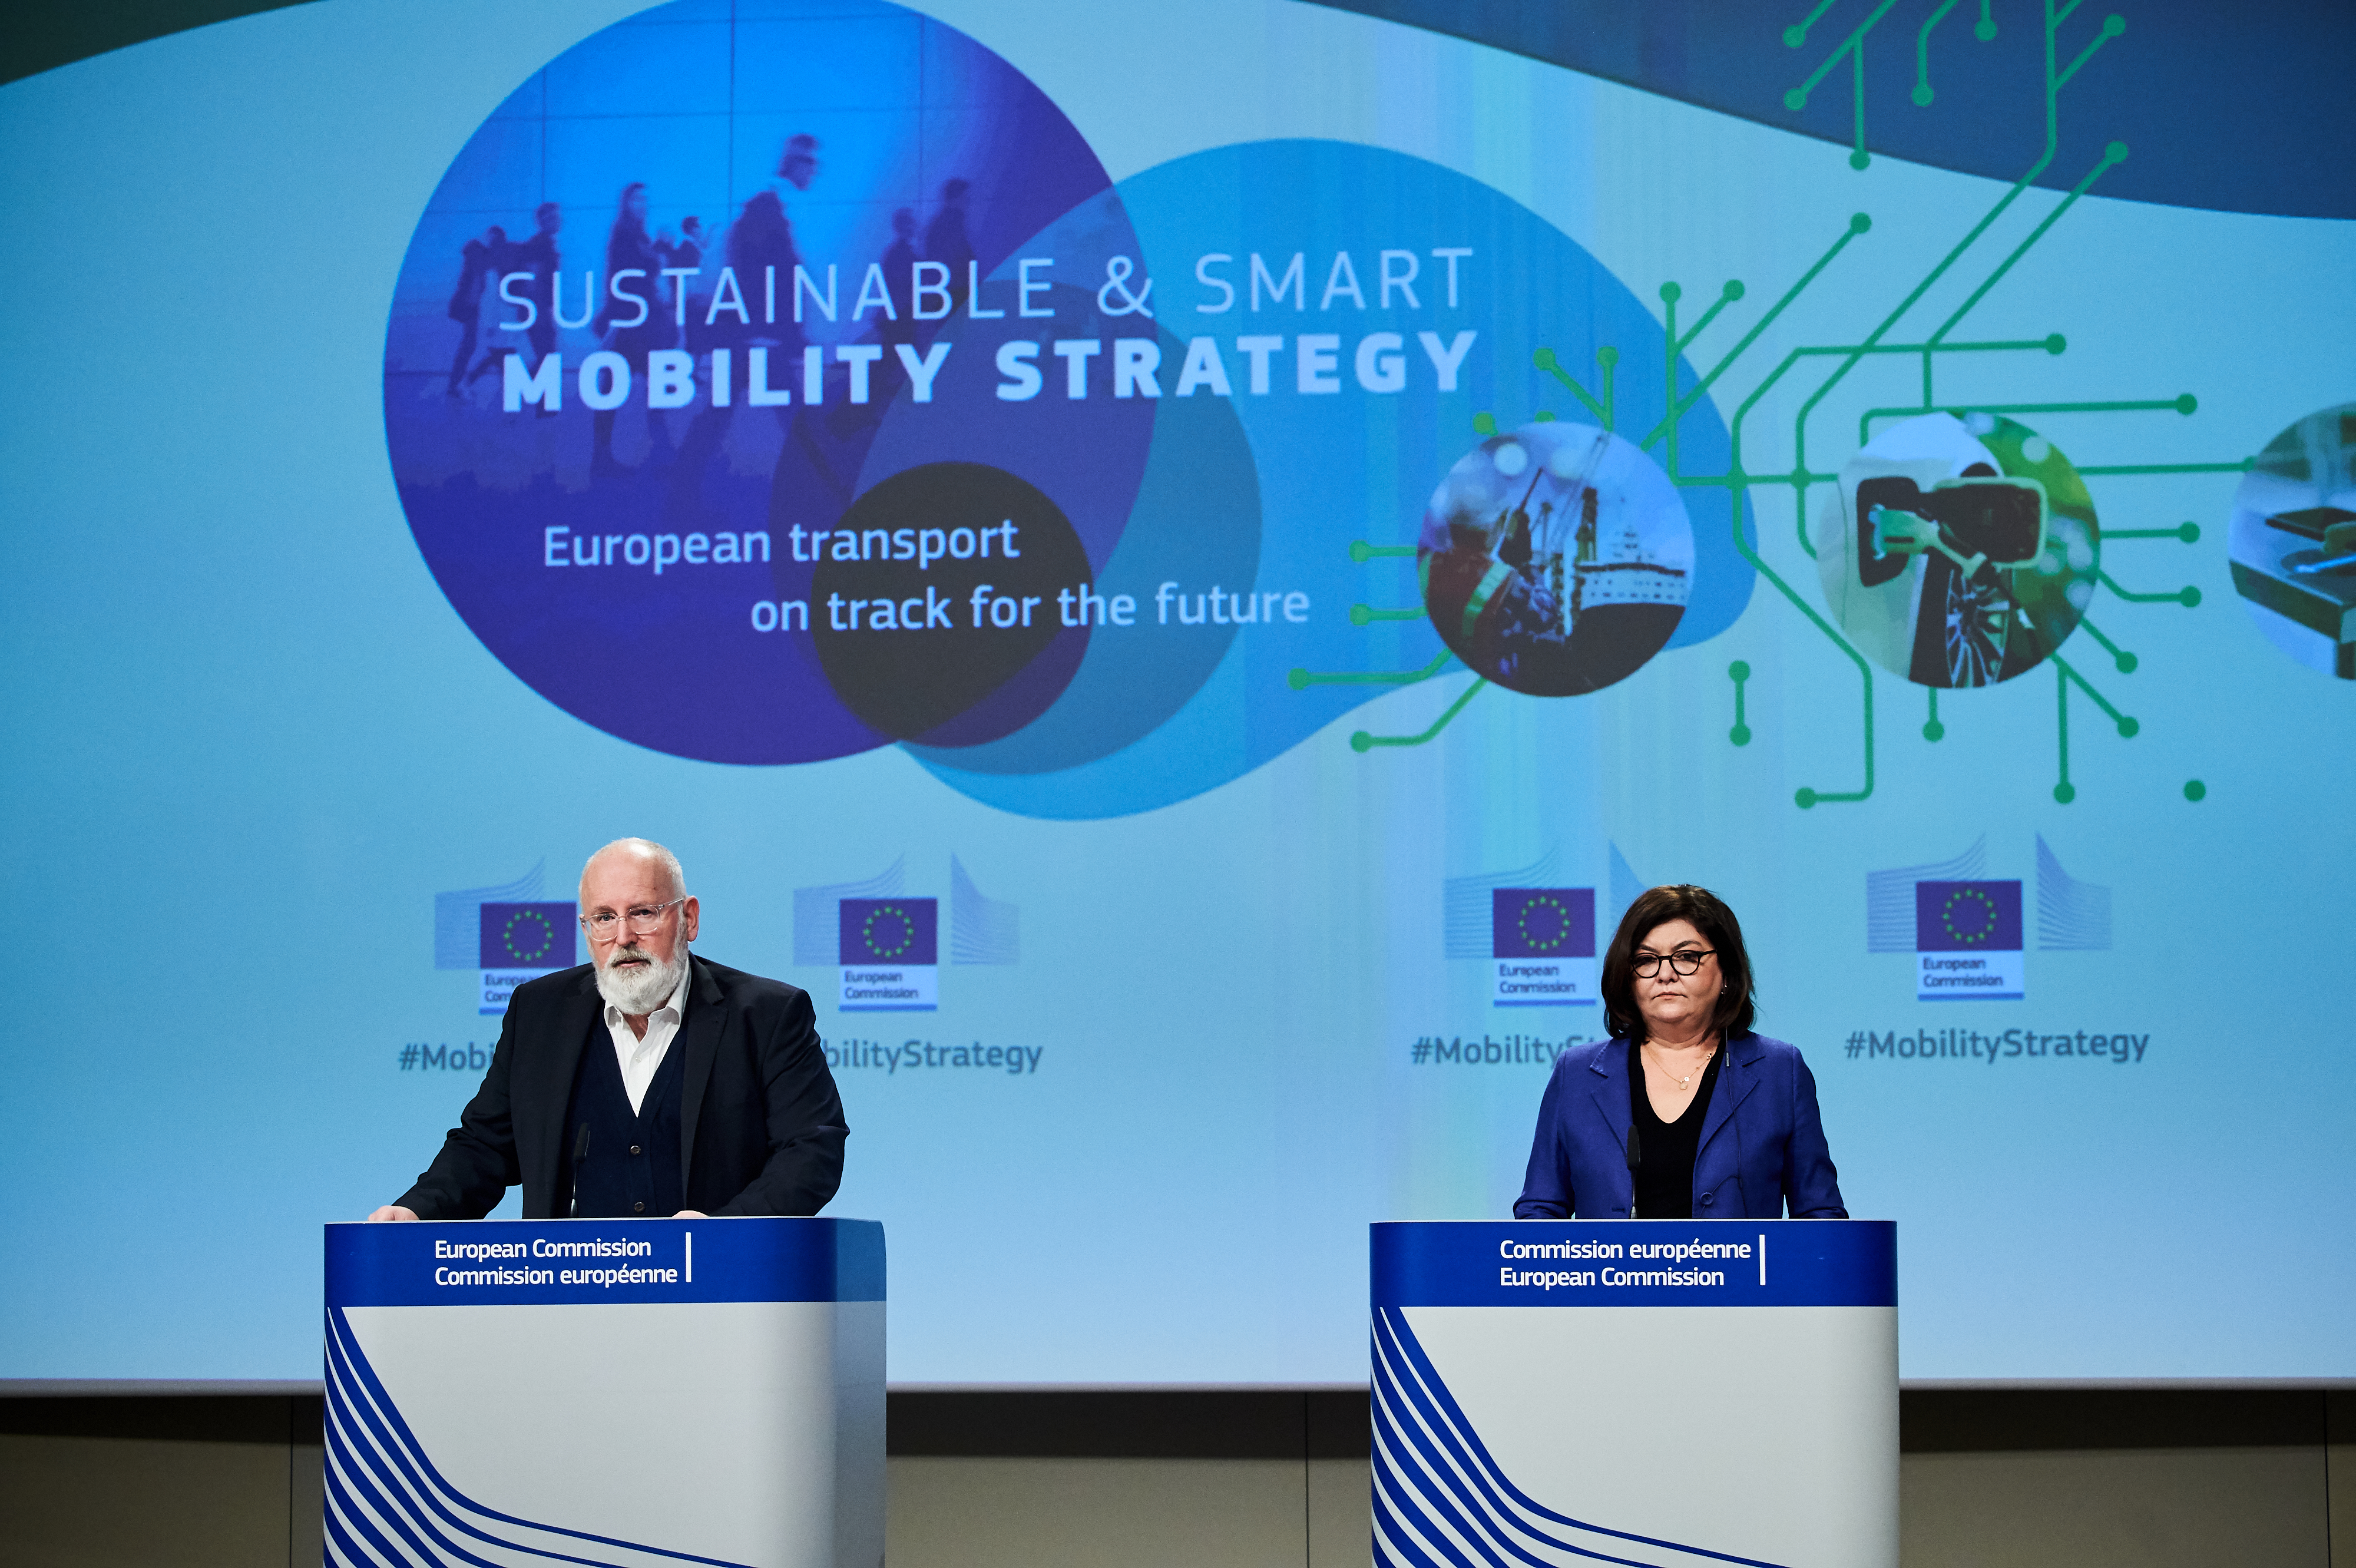 European Commission publishes Sustainable and Smart Mobility Strategy - 3 Key Takeaways